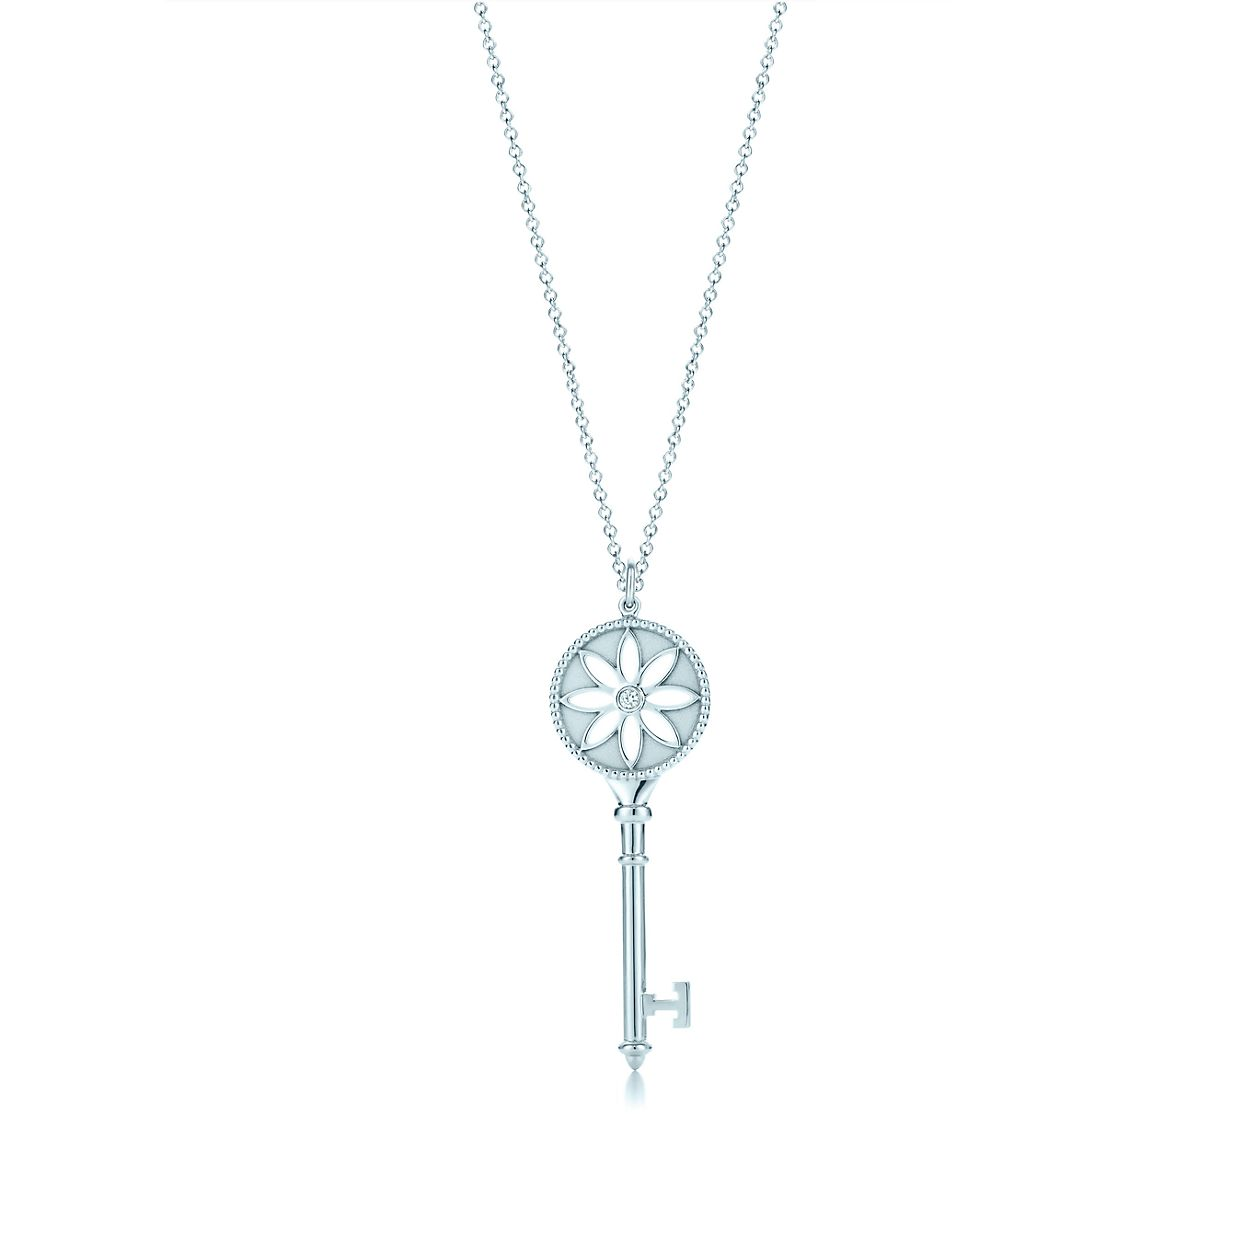 Tiffany keys daisy key pendant in 18k white gold with a diamond on a tiffany keysdaisy key pendant aloadofball